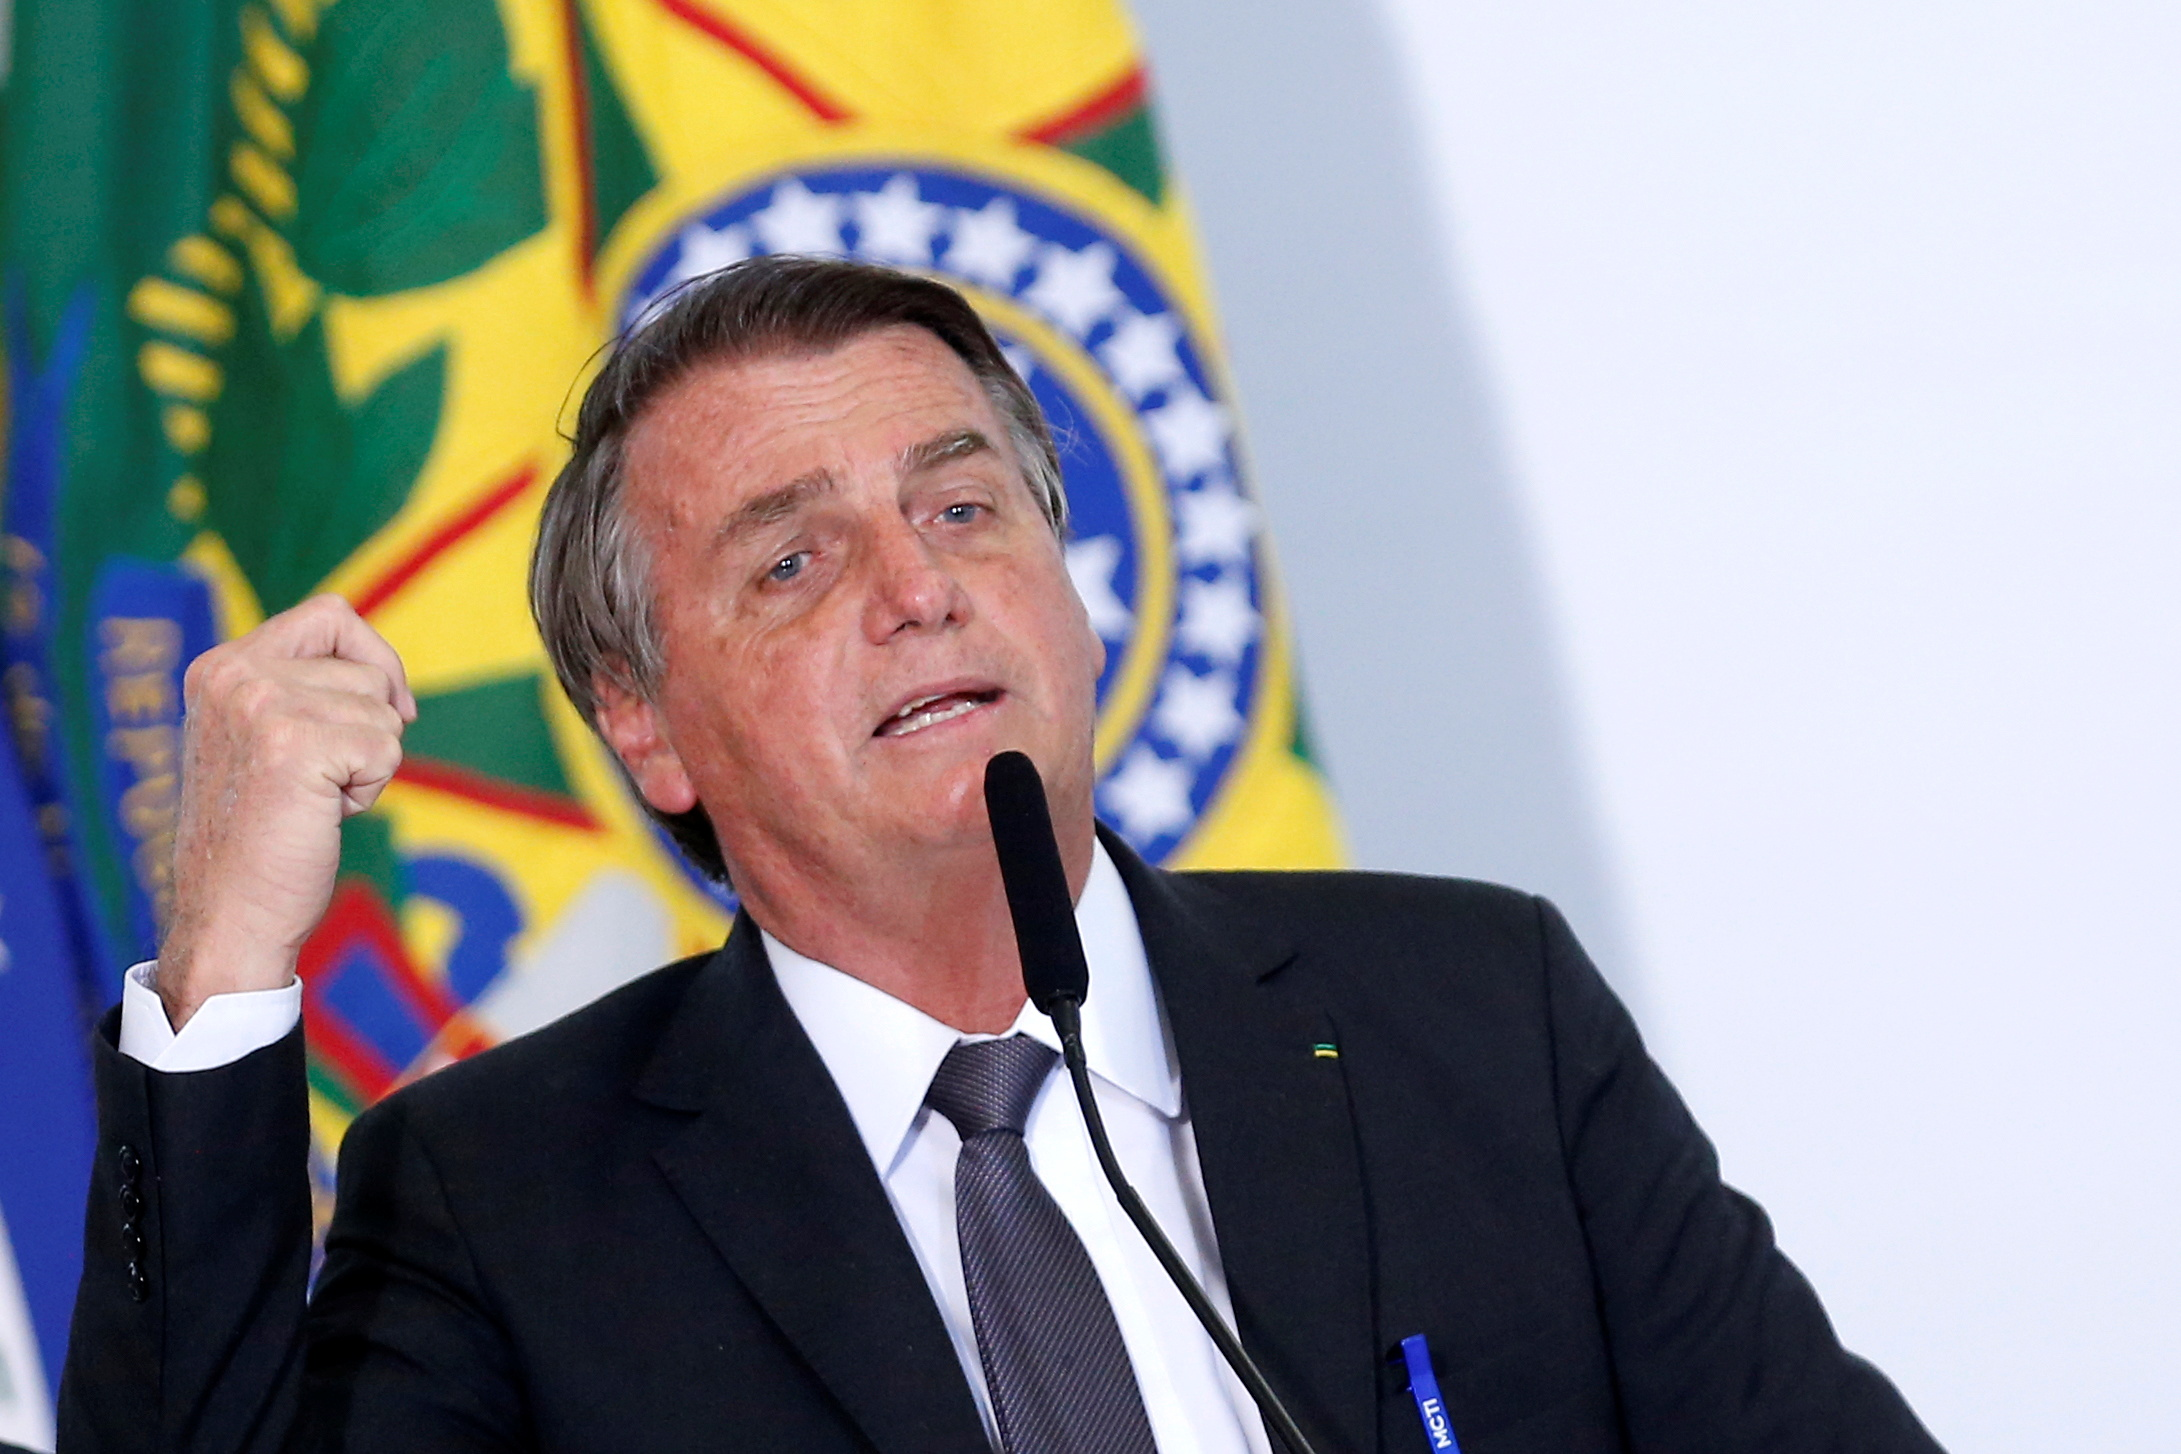 Brazil's President Jair Bolsonaro speaks during a ceremony to sign a law for the privatization of state-controlled electricity utility Eletrobras, at the Planalto Palace in Brasilia, Brazil, July 13, 2021. REUTERS/Adriano Machado